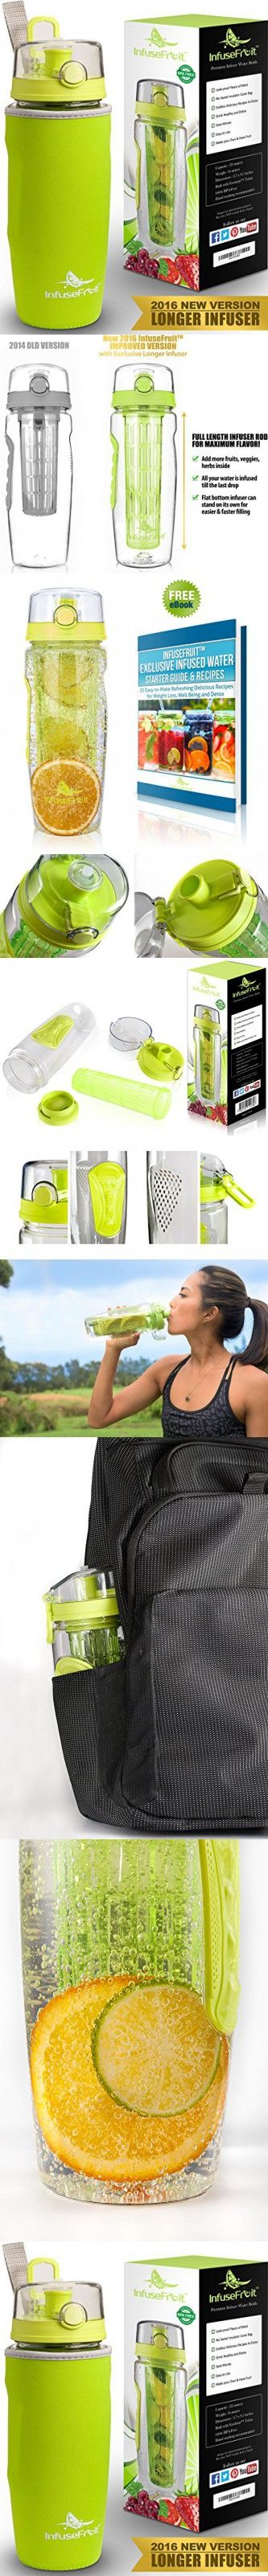 Infuser Water Bottle with Full Length Infusion Rod and Insulating Sleeve + 25 Fruit Infused Water Recipes eBook Gift - Large 32 Oz Sport Bottle - Your Healthy Hydration Made Easy - Lemon GREEN